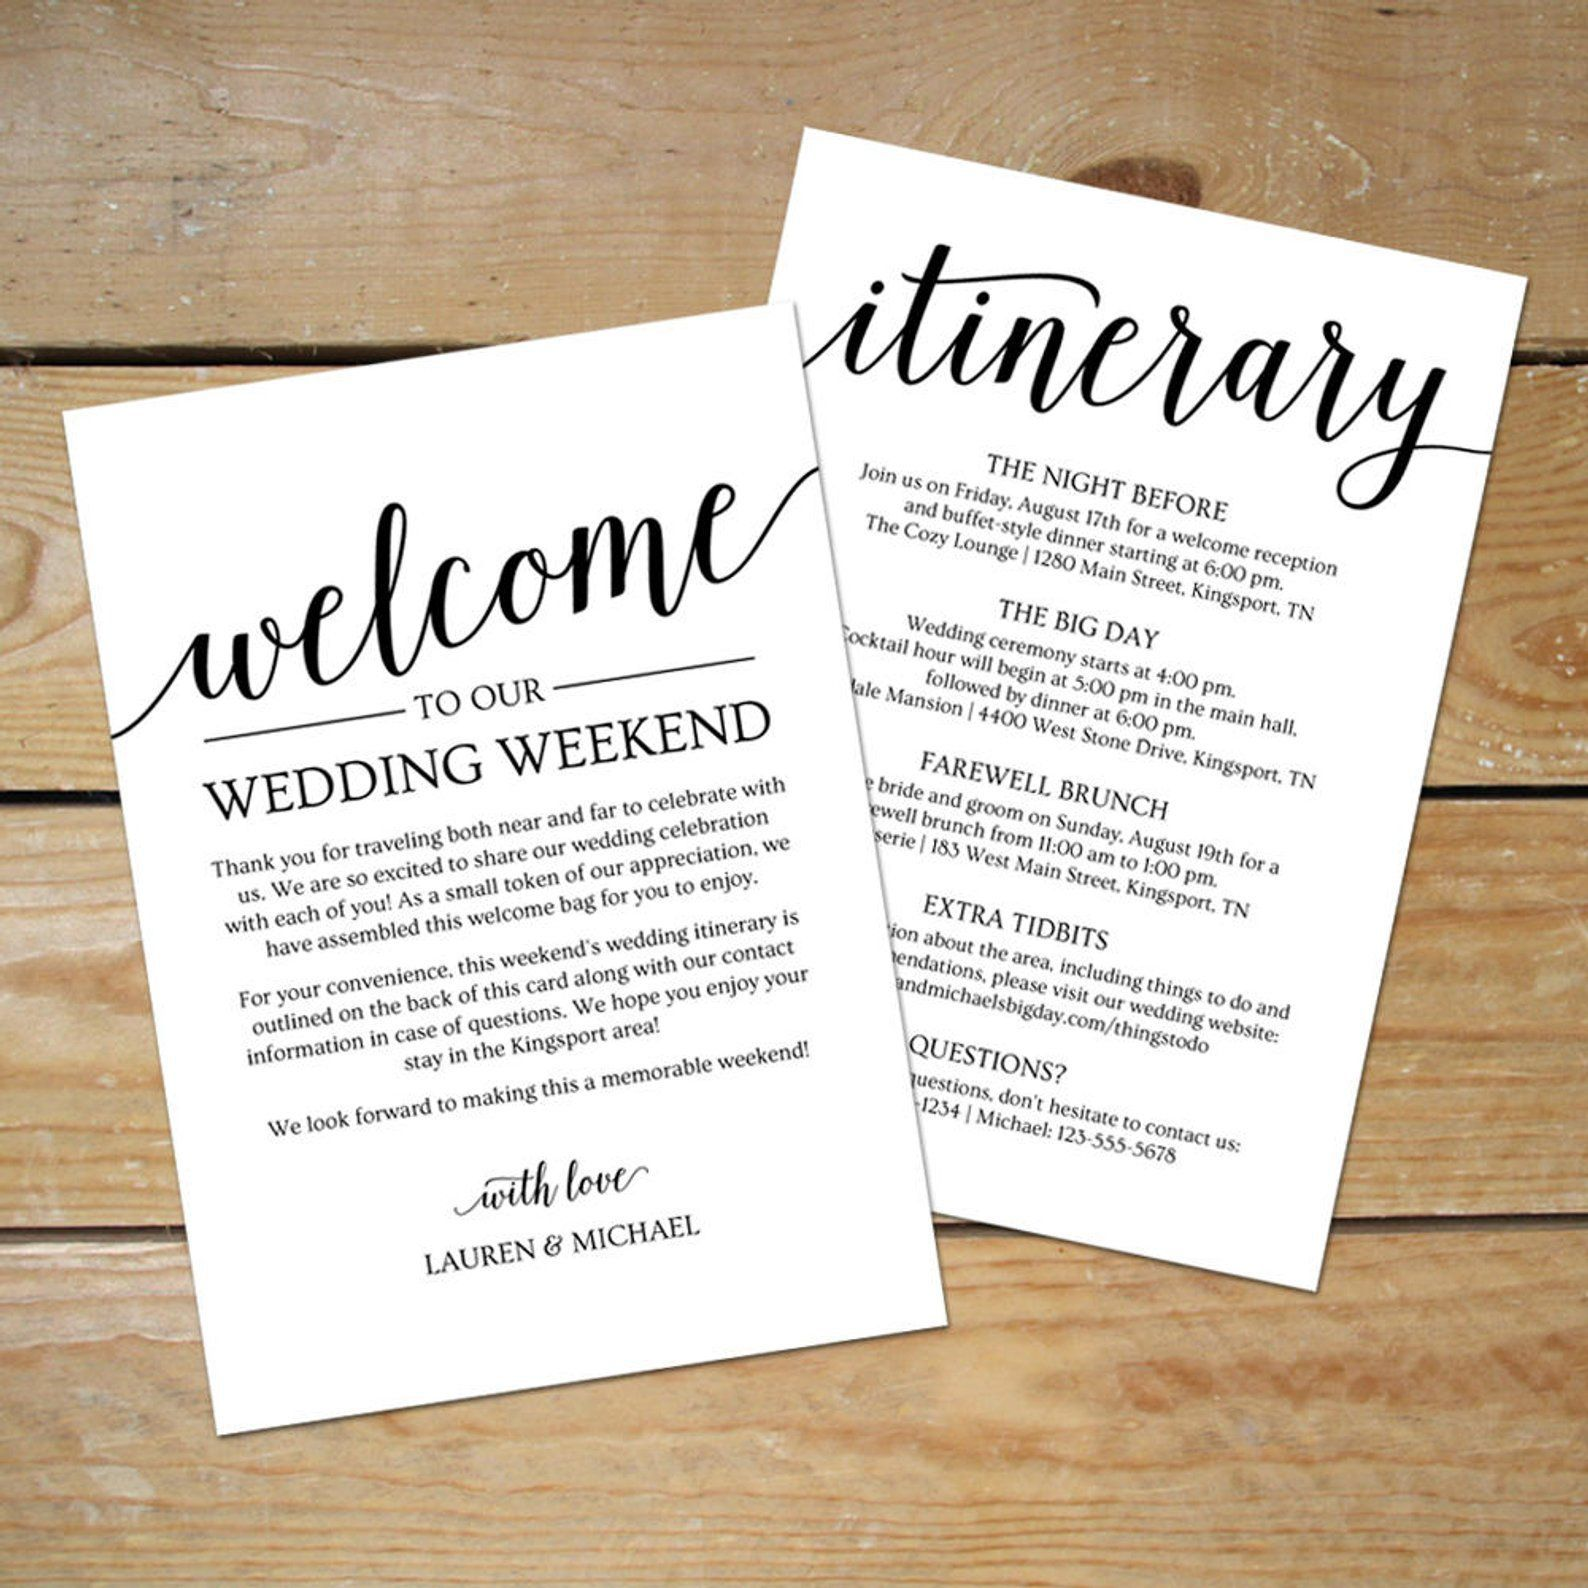 002 Unforgettable Destination Wedding Welcome Letter Template Picture  And ItineraryFull